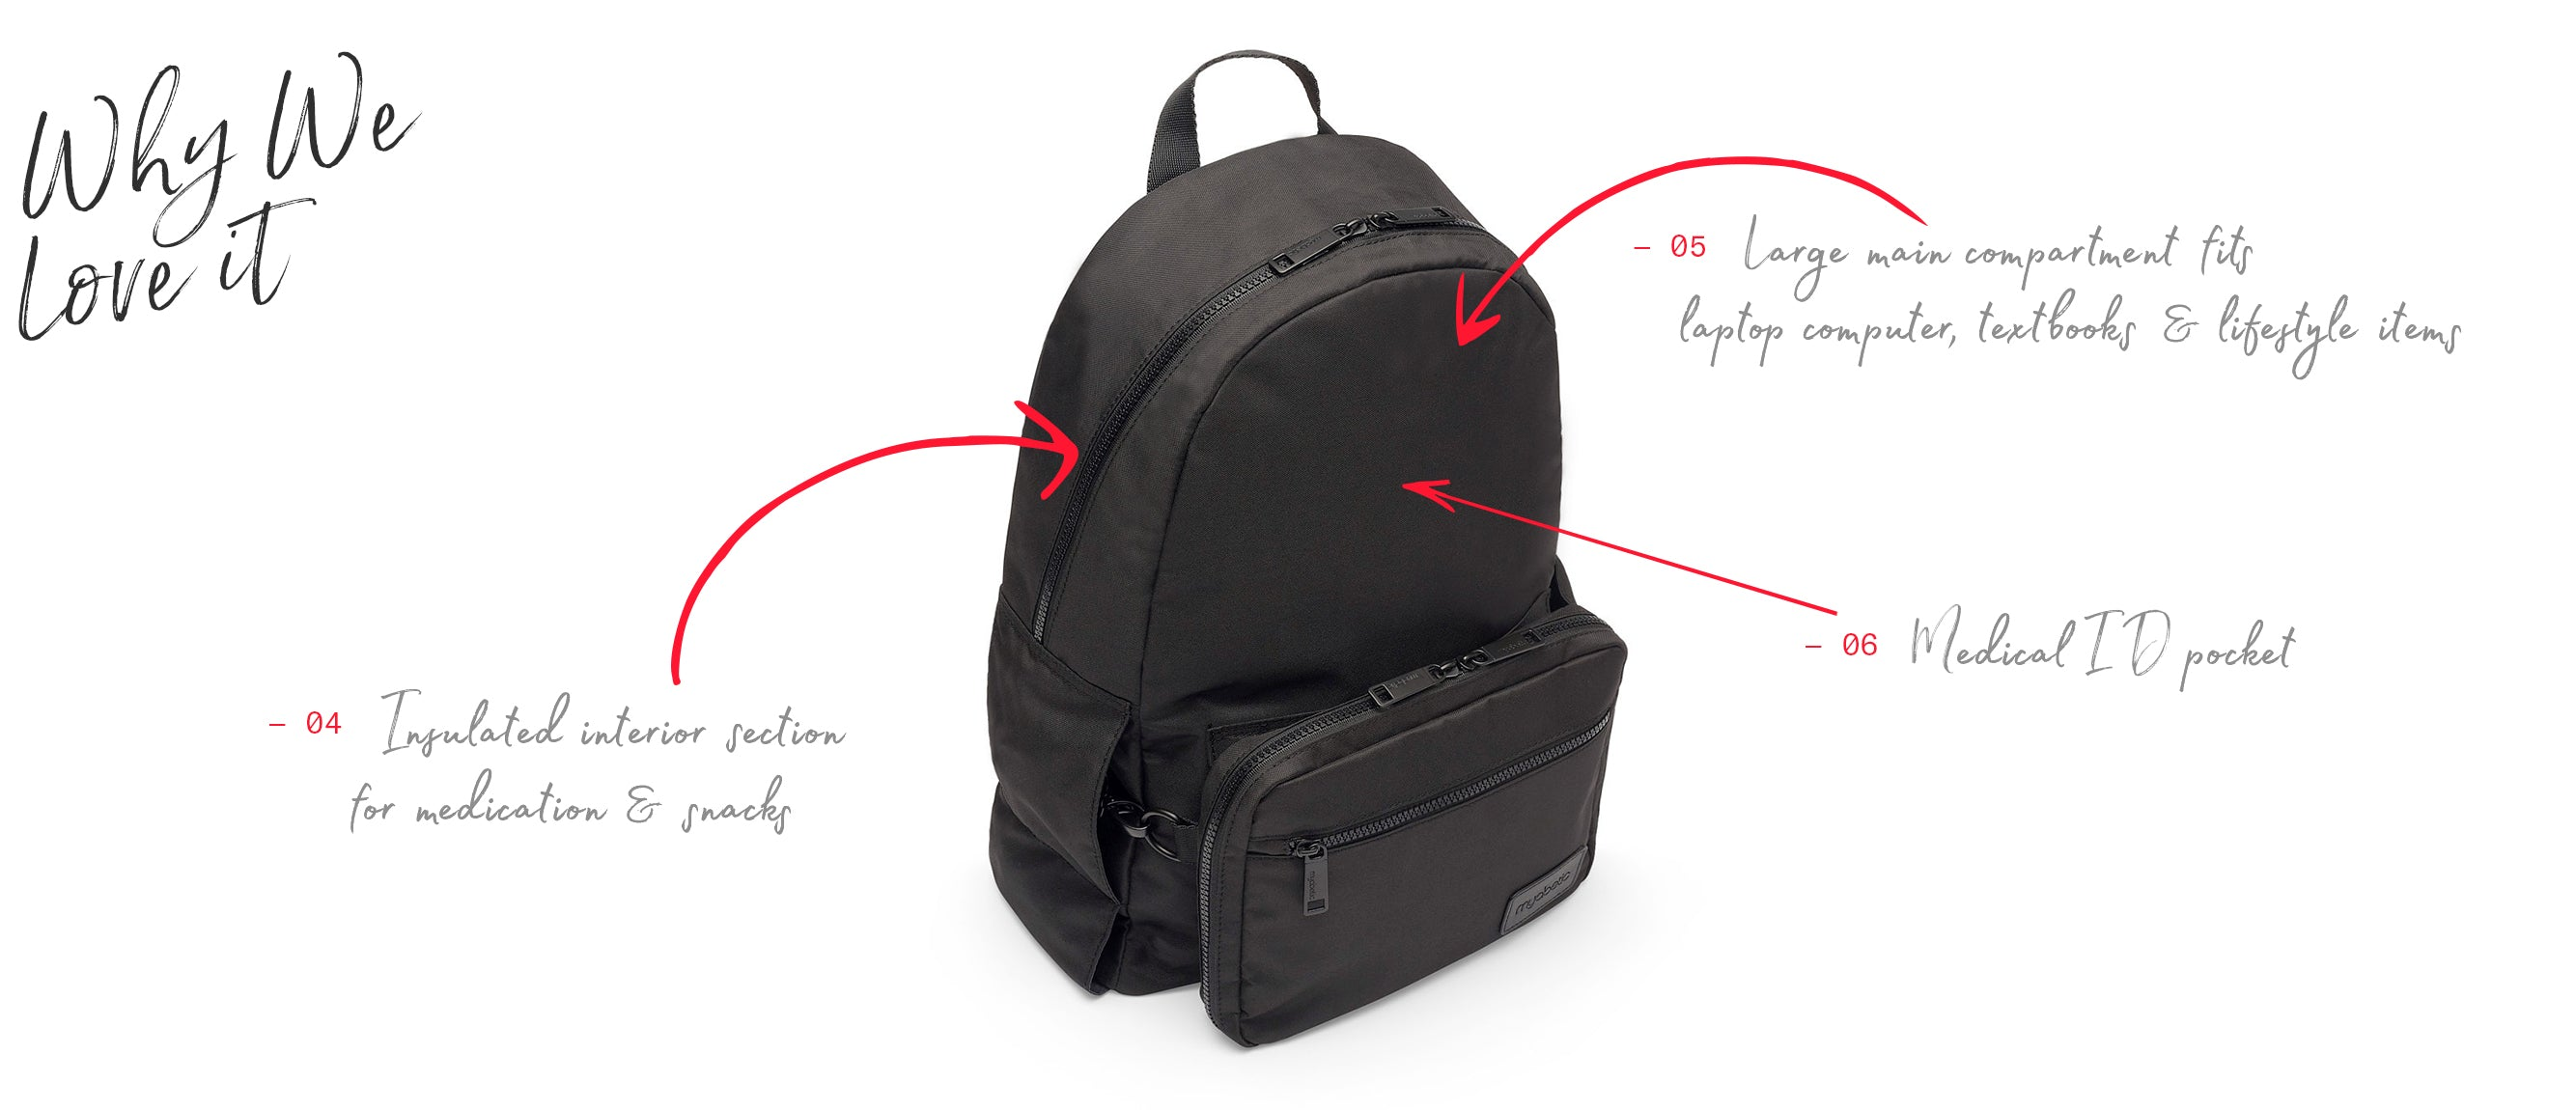 Myabetic Edelman Diabetes Backpack Why We Love It 2